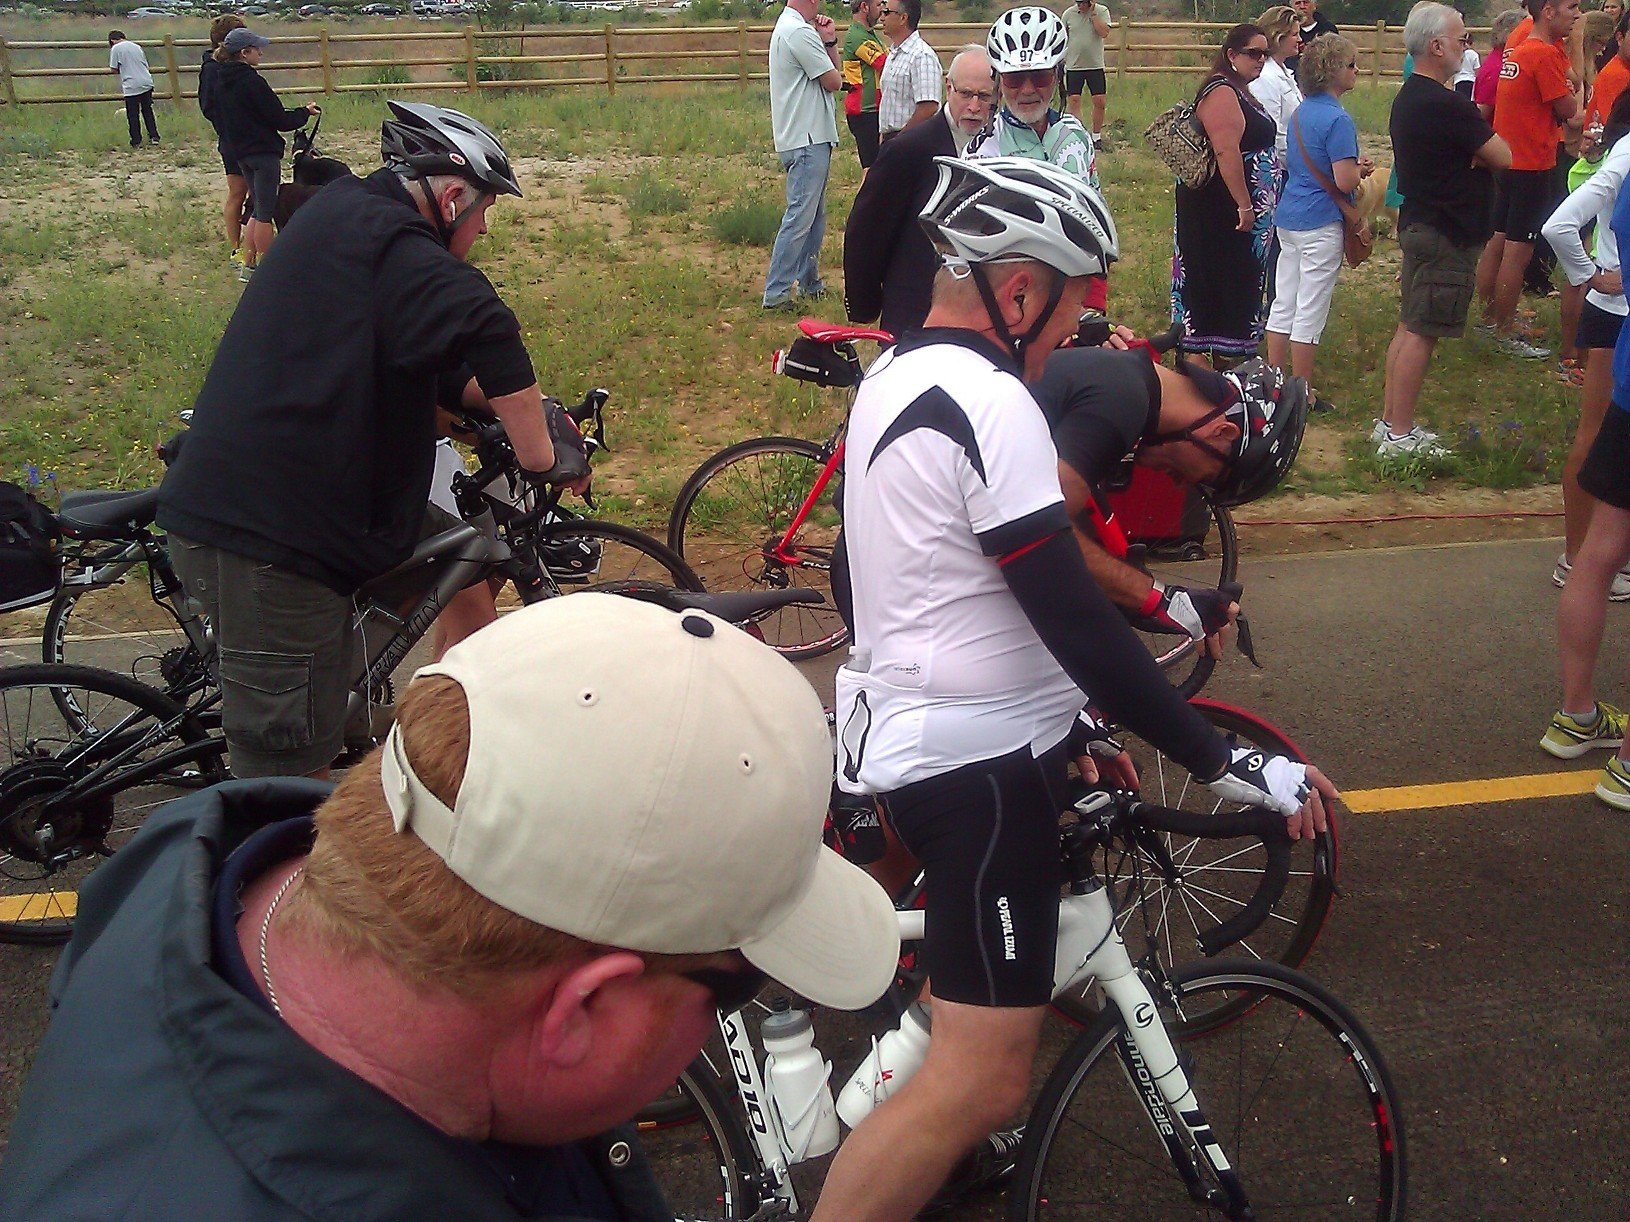 AVID BIKERS READY TO USE THE TRAIL